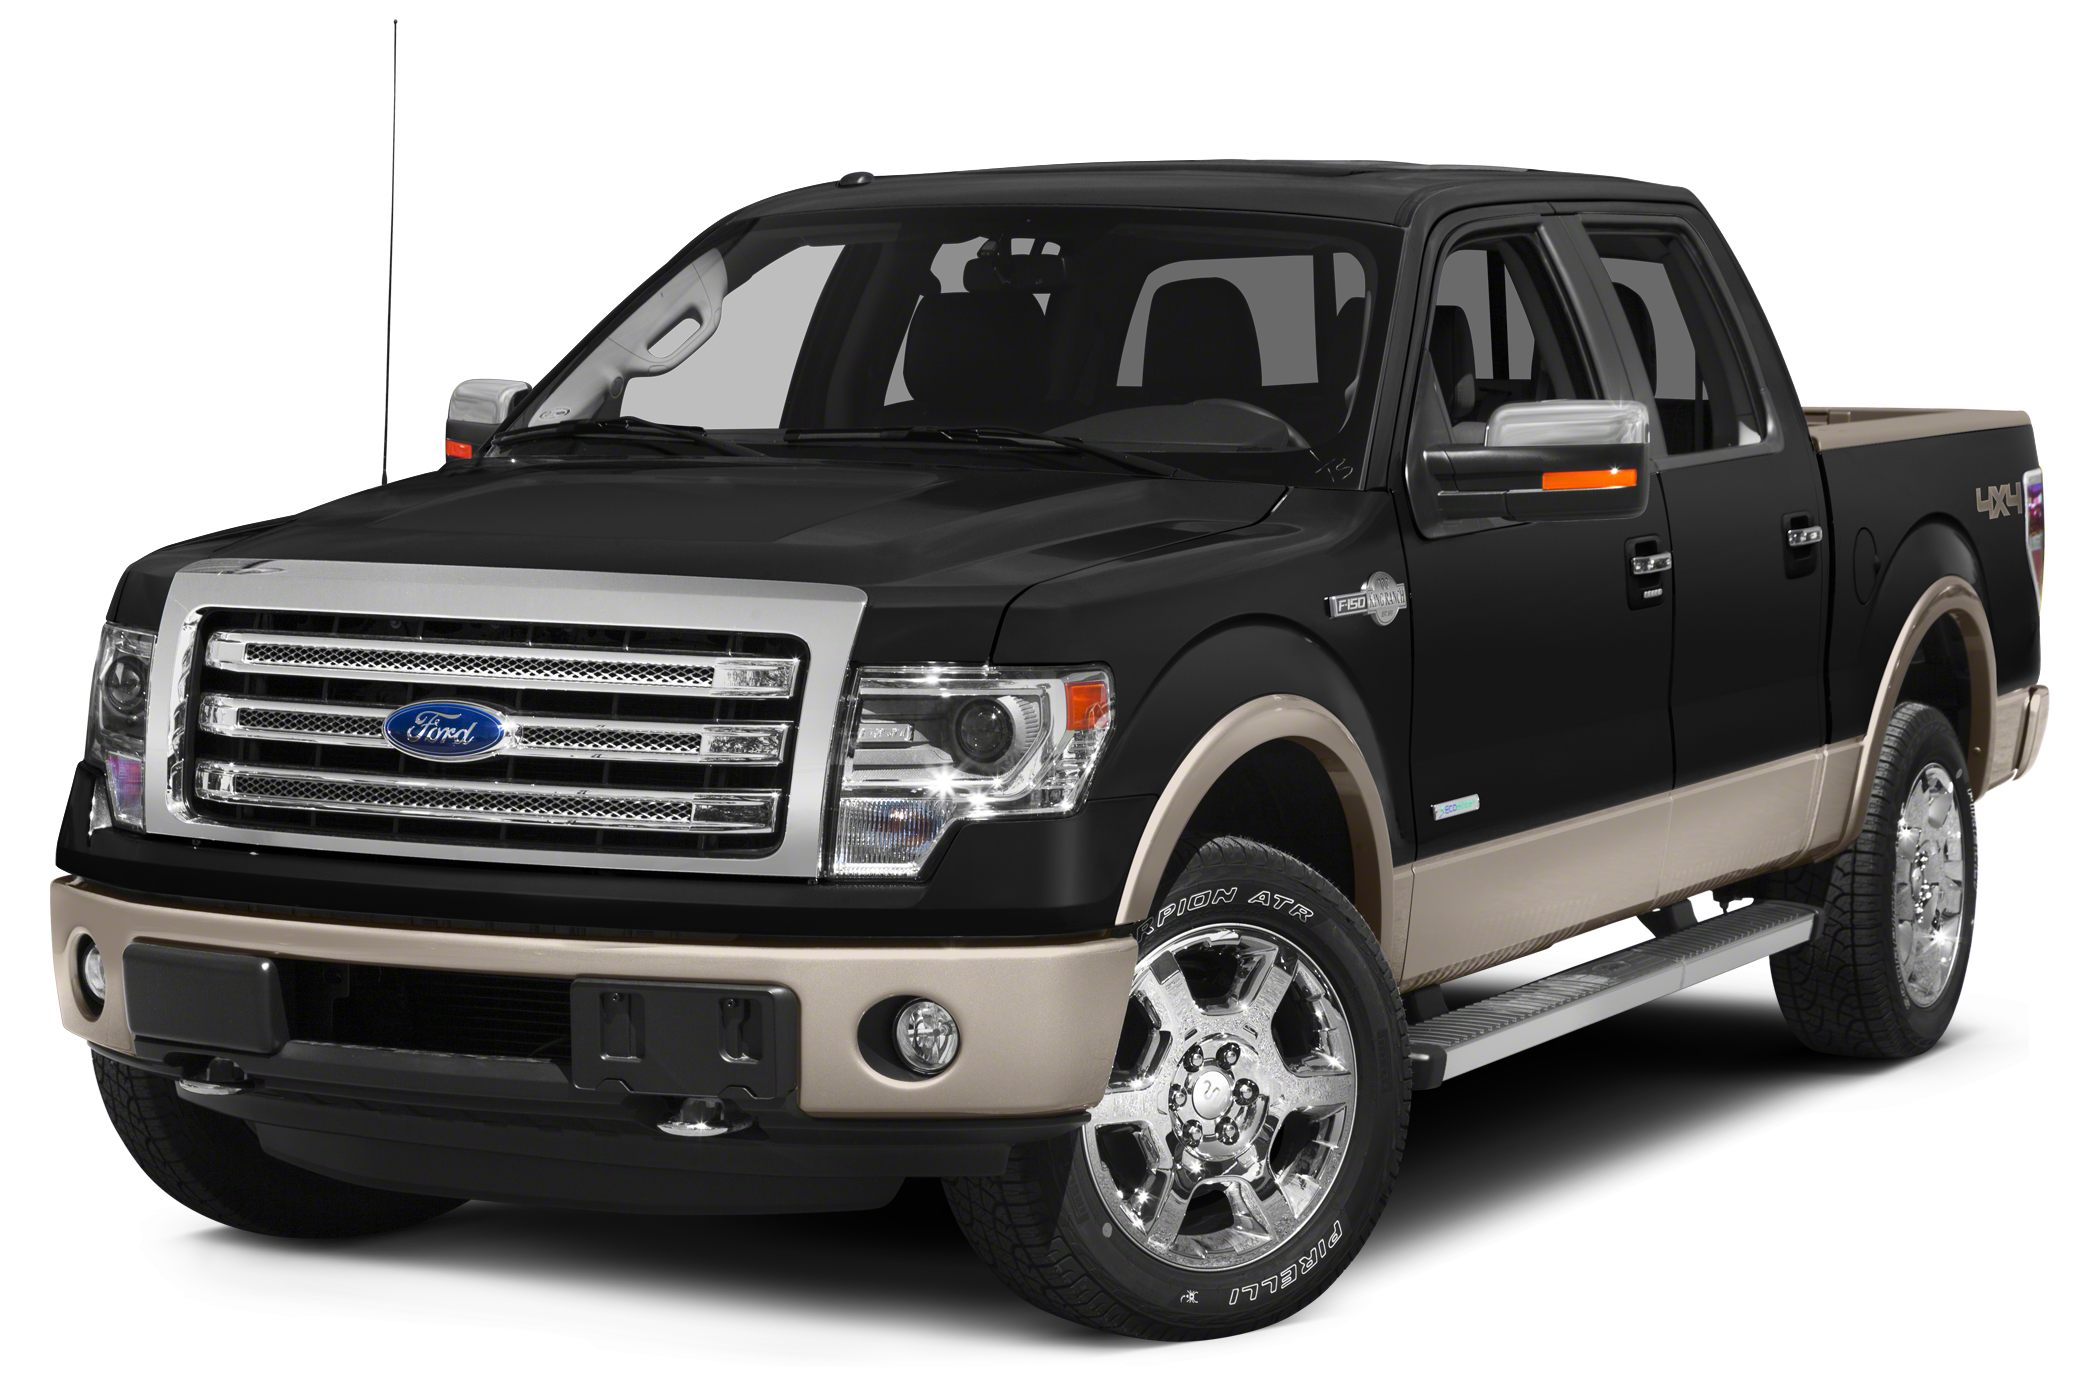 2013 Ford F150 King Ranch Crew Cab Pickup for sale in Waxahachie for $40,995 with 22,473 miles